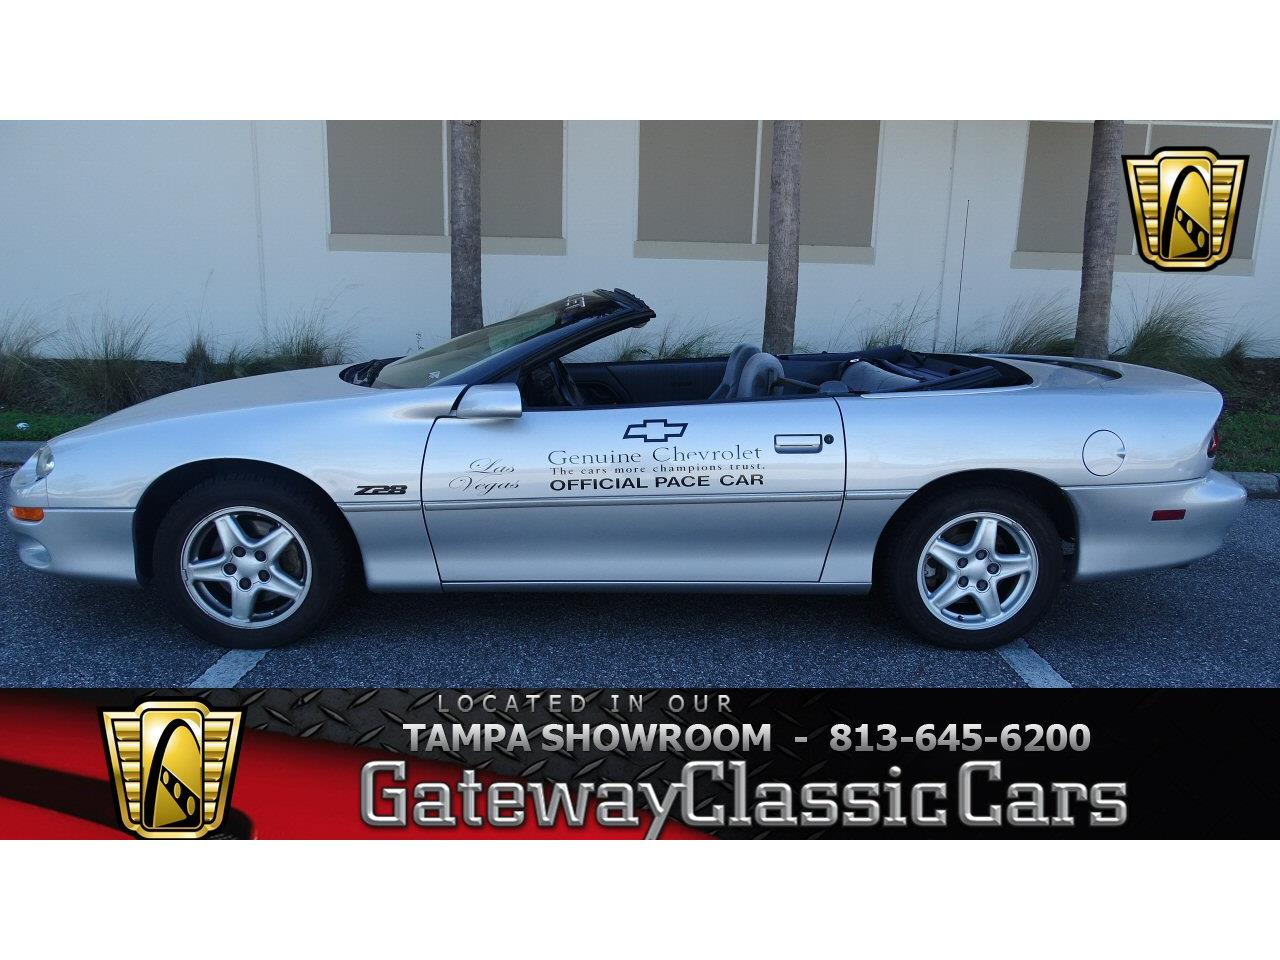 Large Picture of 1998 Chevrolet Camaro located in Ruskin Florida - $10,595.00 - KE0X